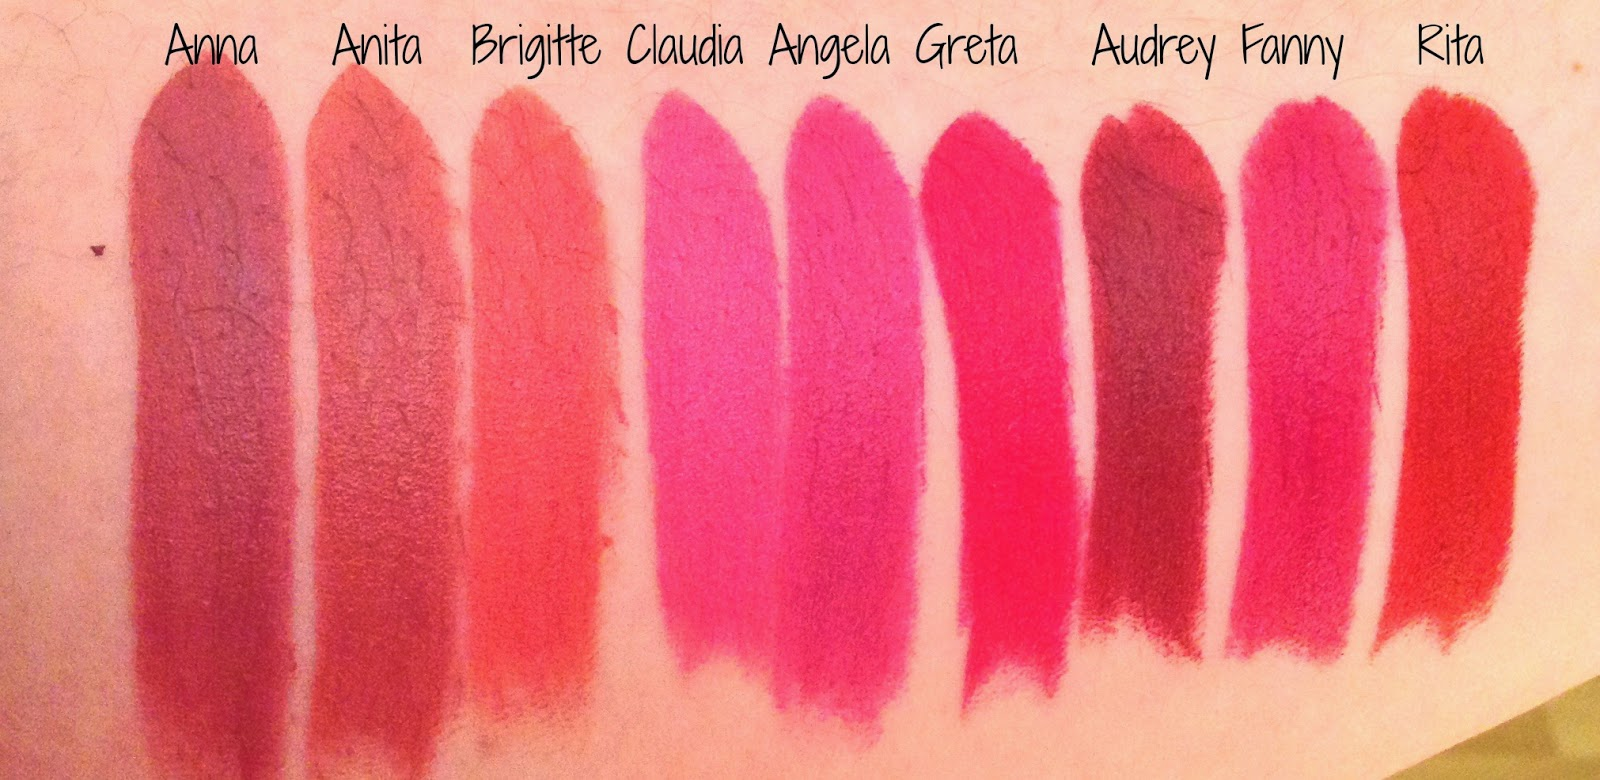 Bien-aimé NARS Audacious Lipsticks- Collection, Review and Swatches  DG73